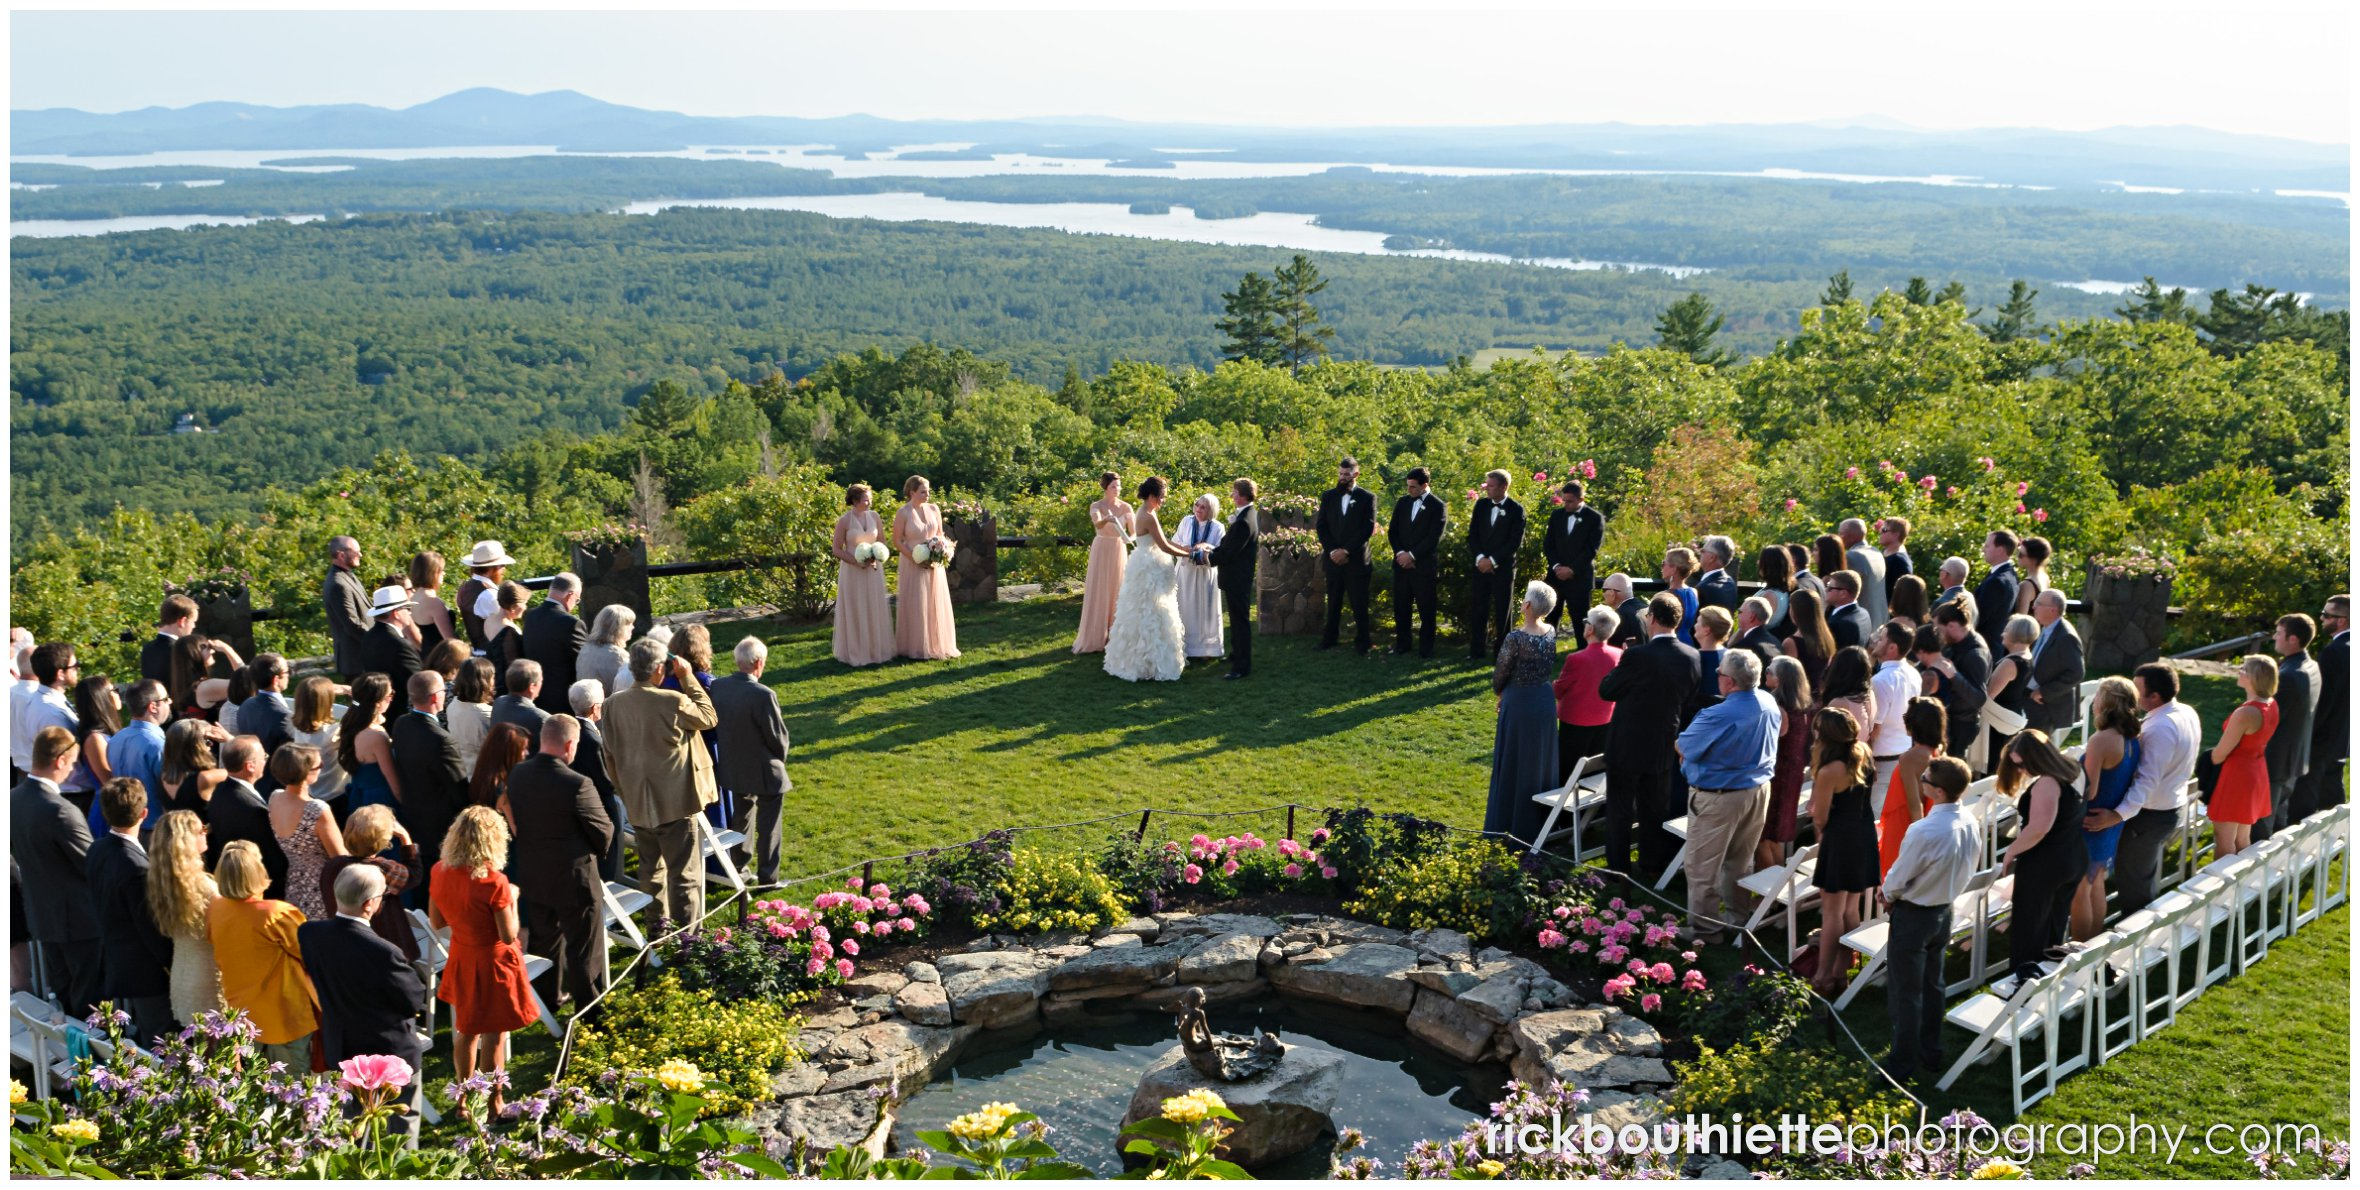 overall view of wedding ceremony from above at Castle In The Clouds wedding